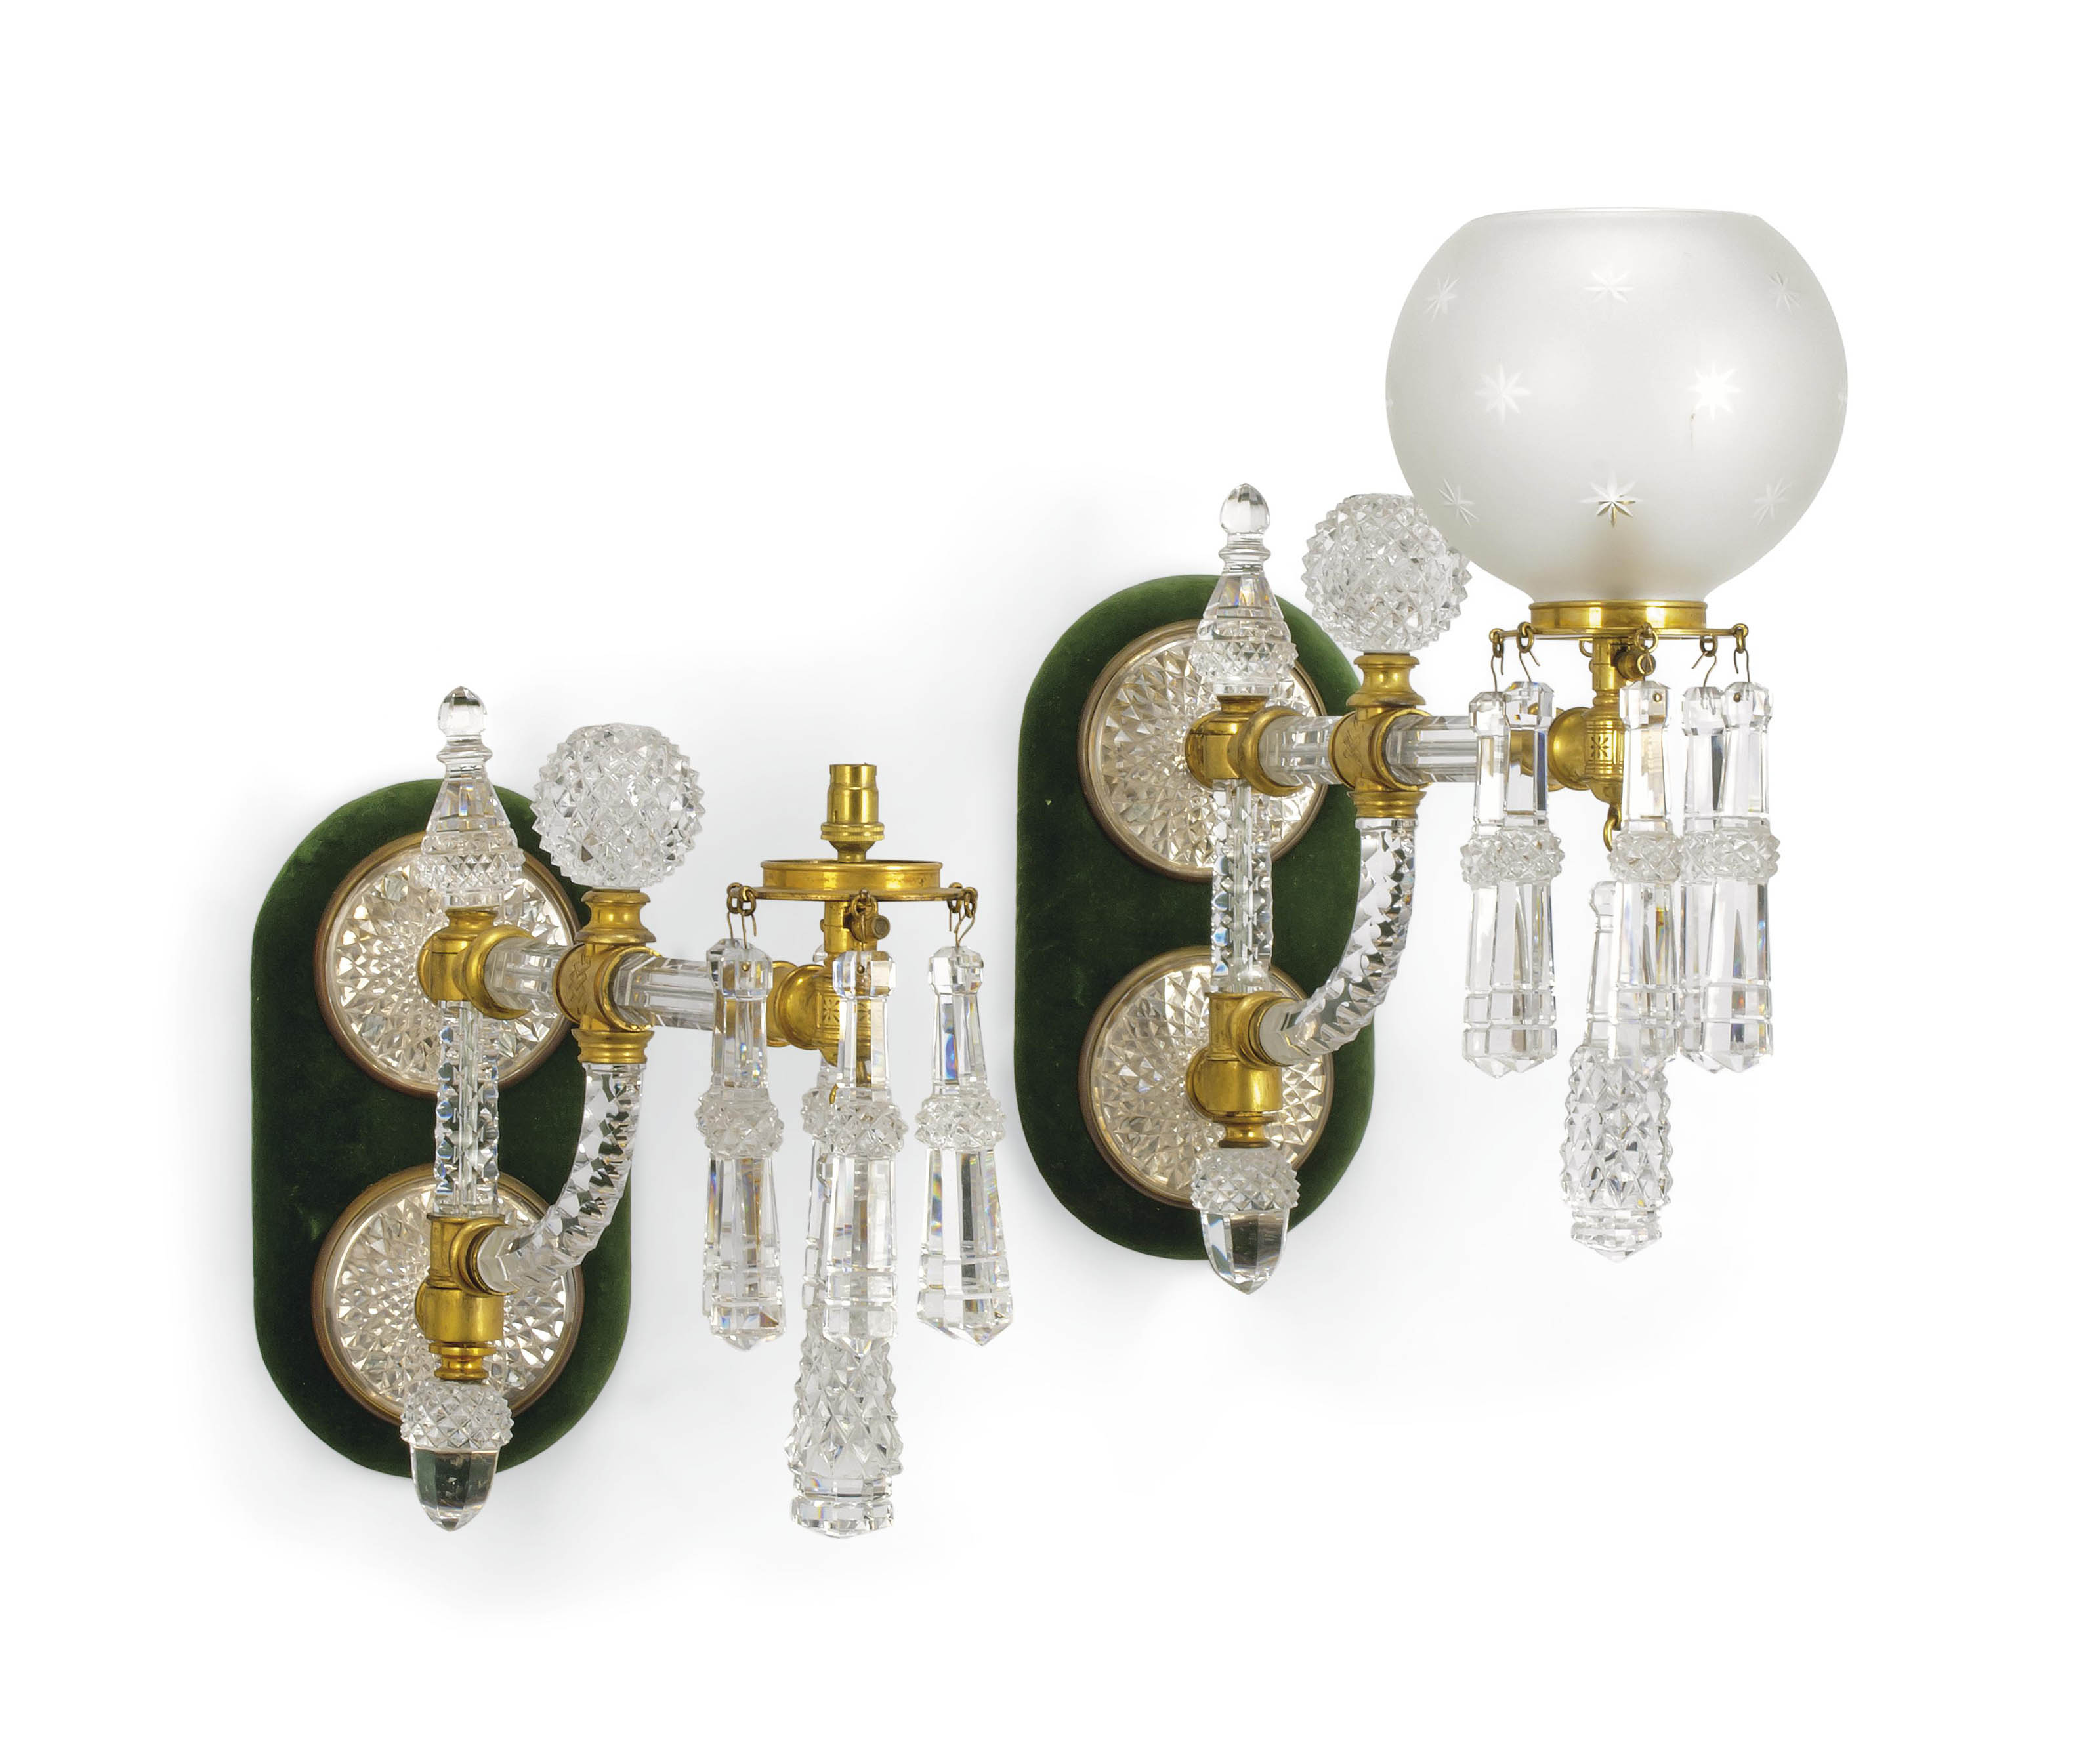 A PAIR OF VICTORIAN CUT-GLASS AND GILT-METAL ADJUSTABLE WALL-APPLIQUES